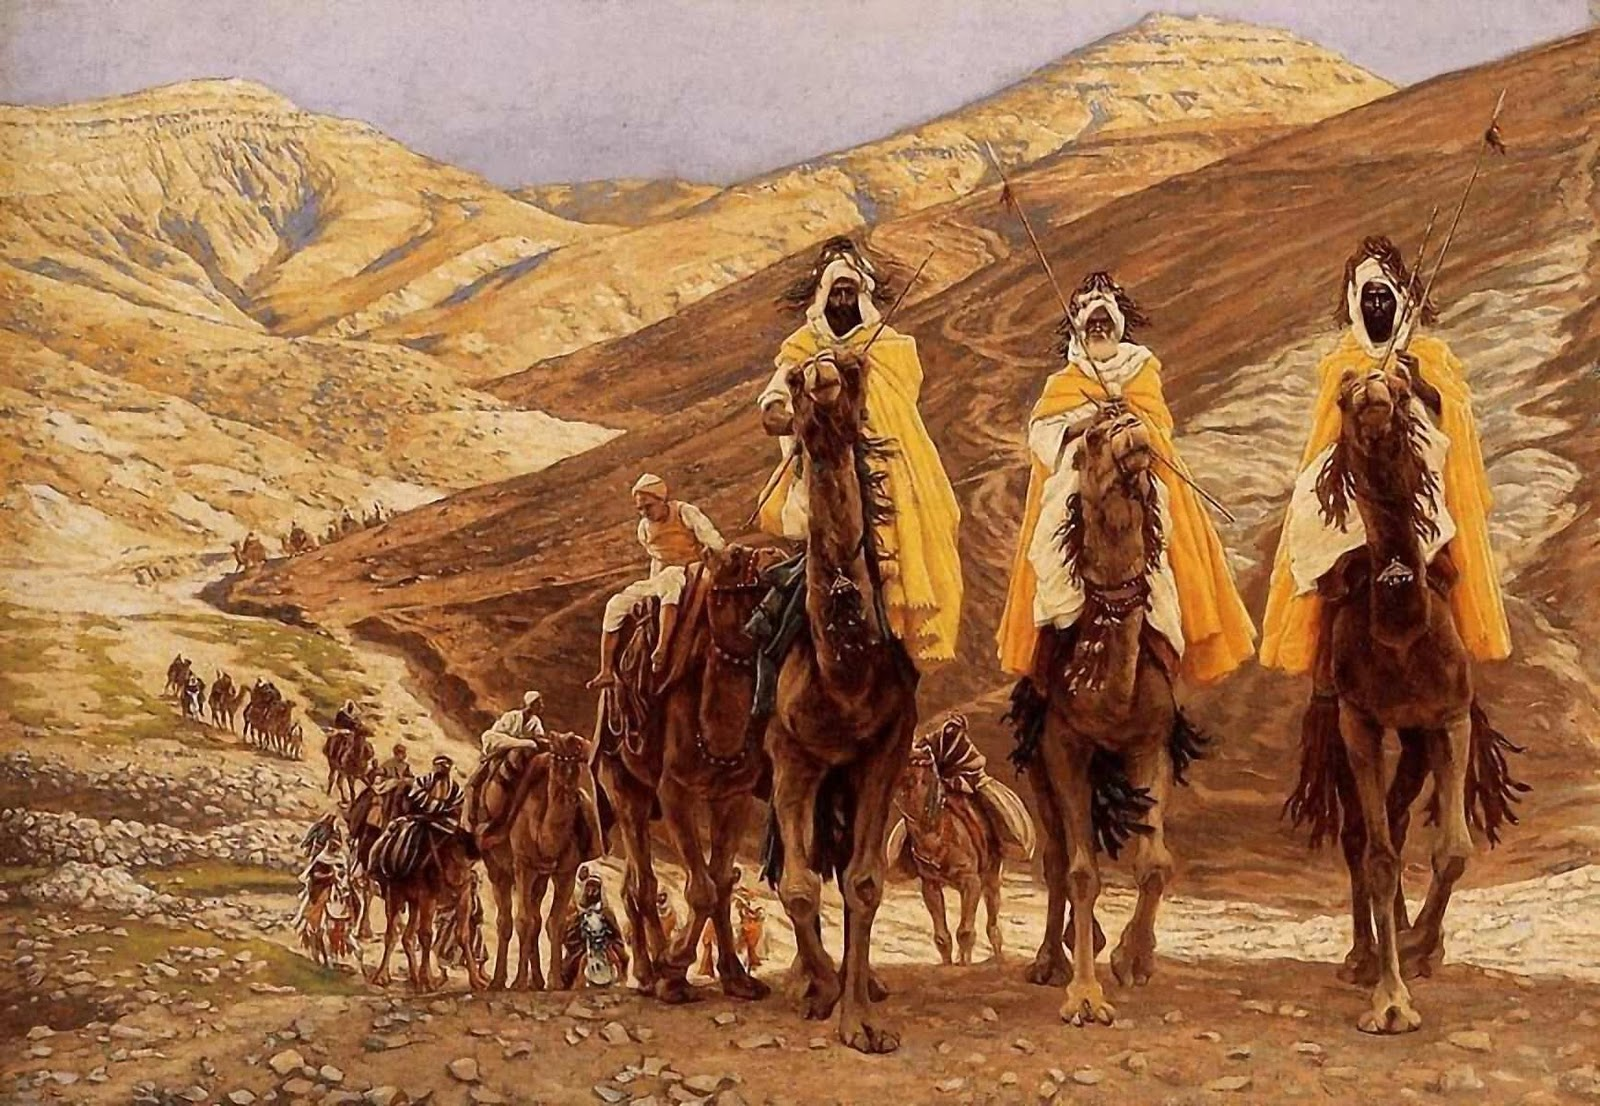 The-Journey-of-the-Magi-1894-James-Jacques-Joseph-Tissot-french-1836-1902